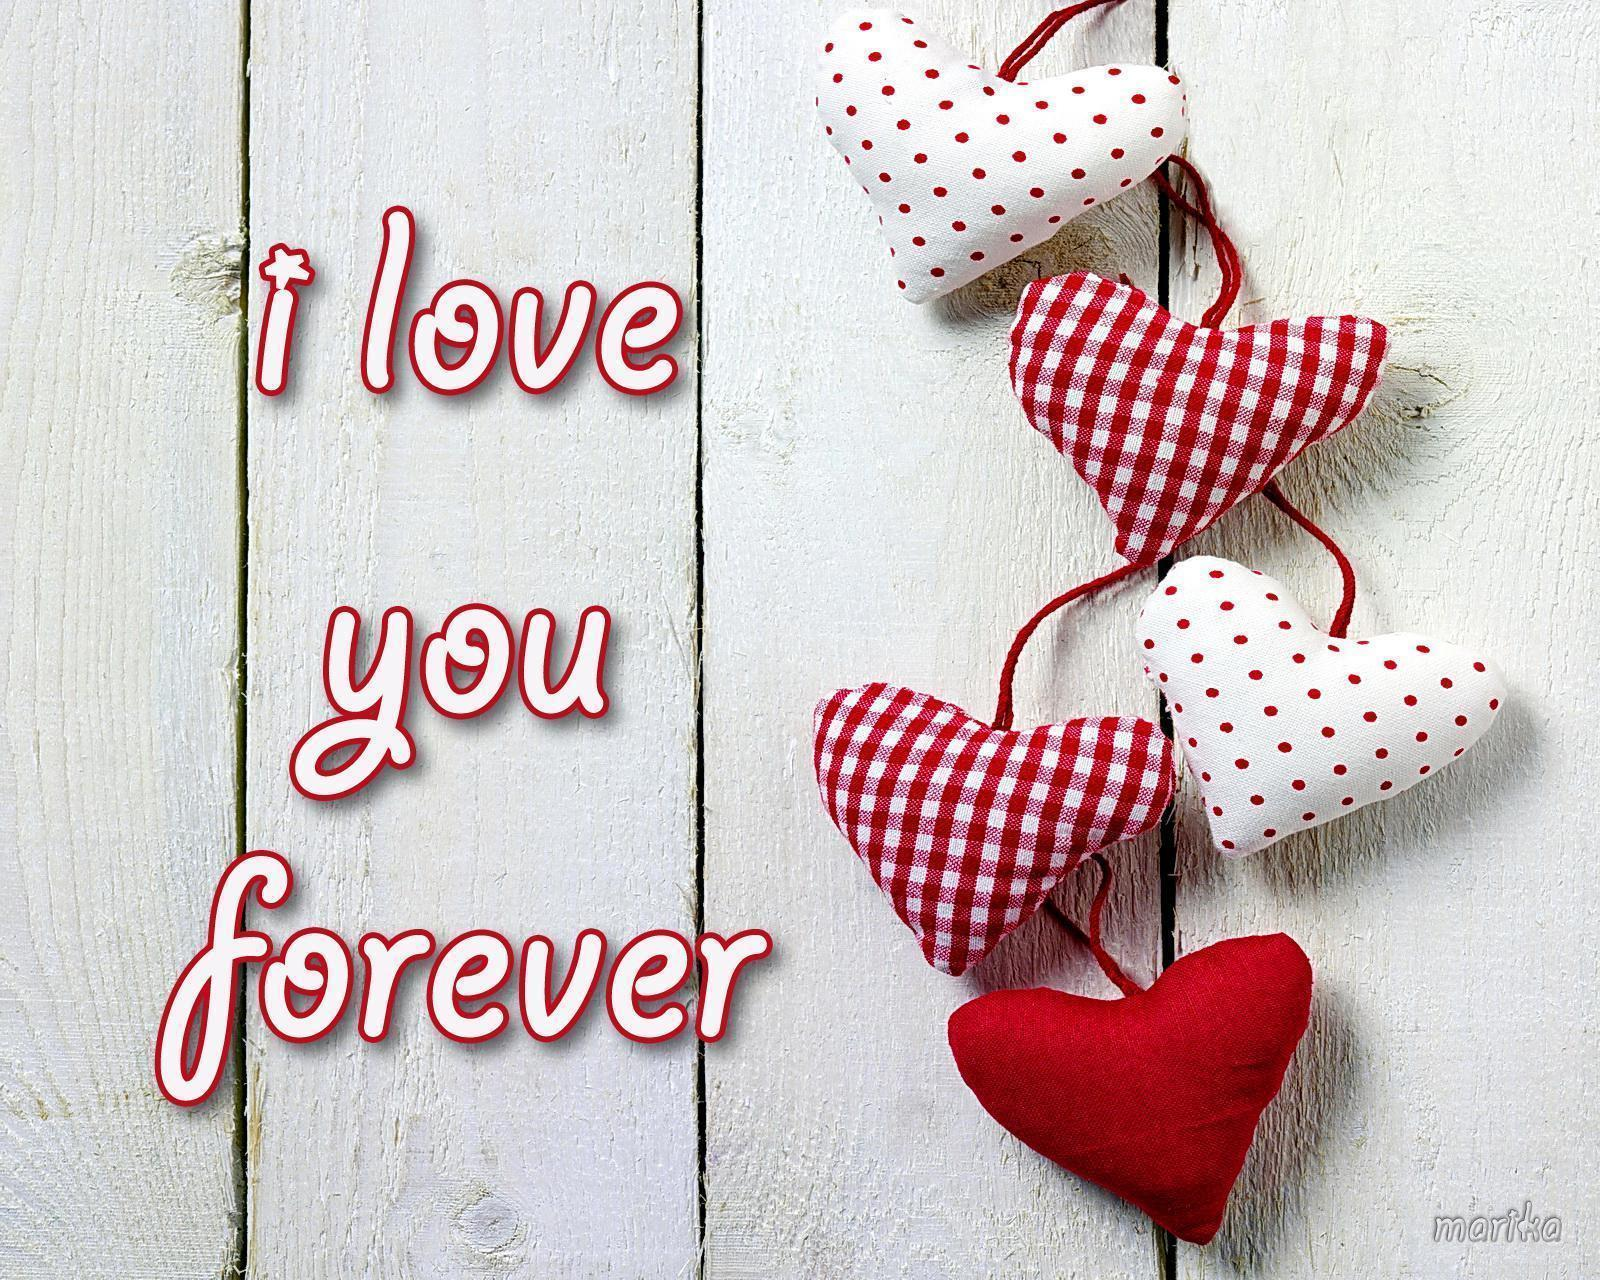 I Love U Wallpaper In Blood : I Love You Wallpapers - Wallpaper cave